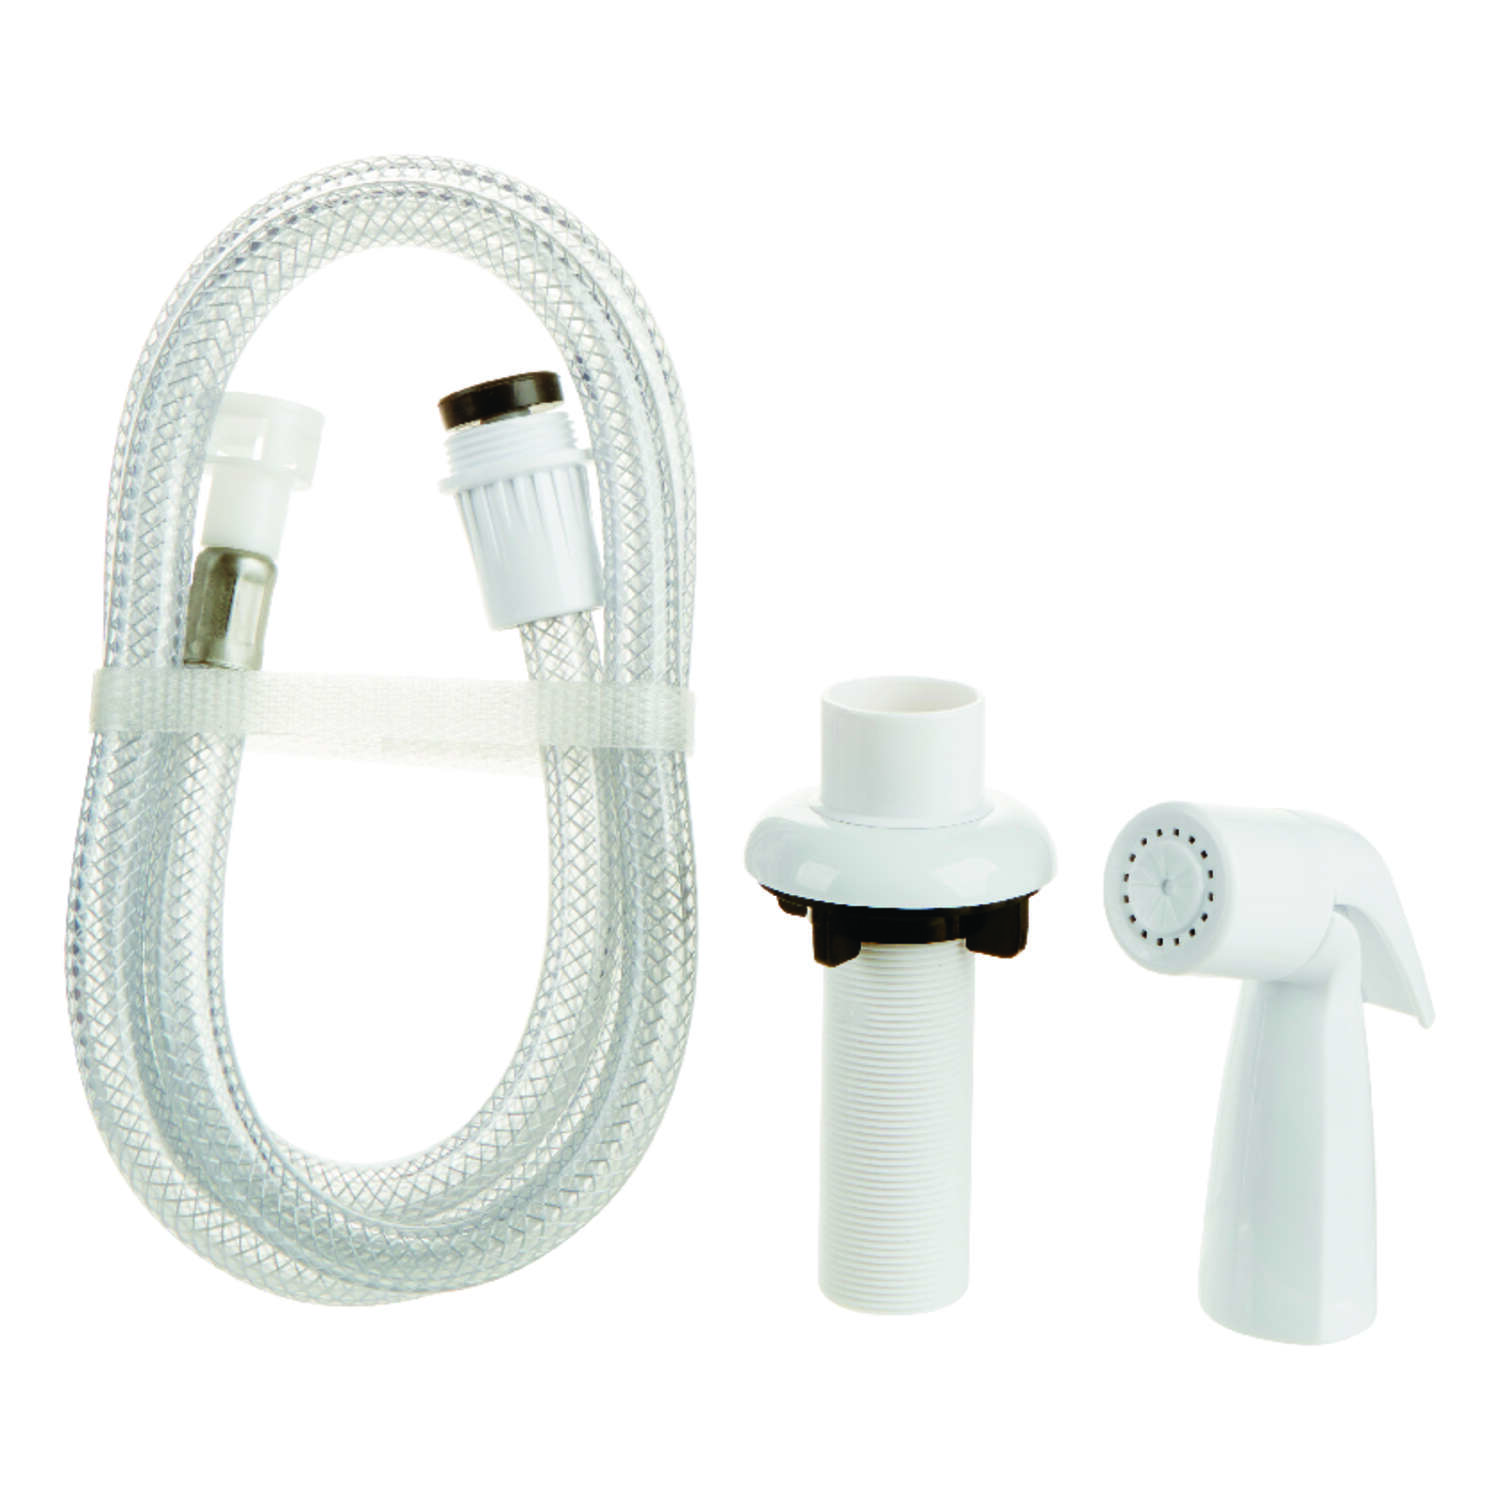 OakBrook For Universal White Faucet Sprayer with Hose